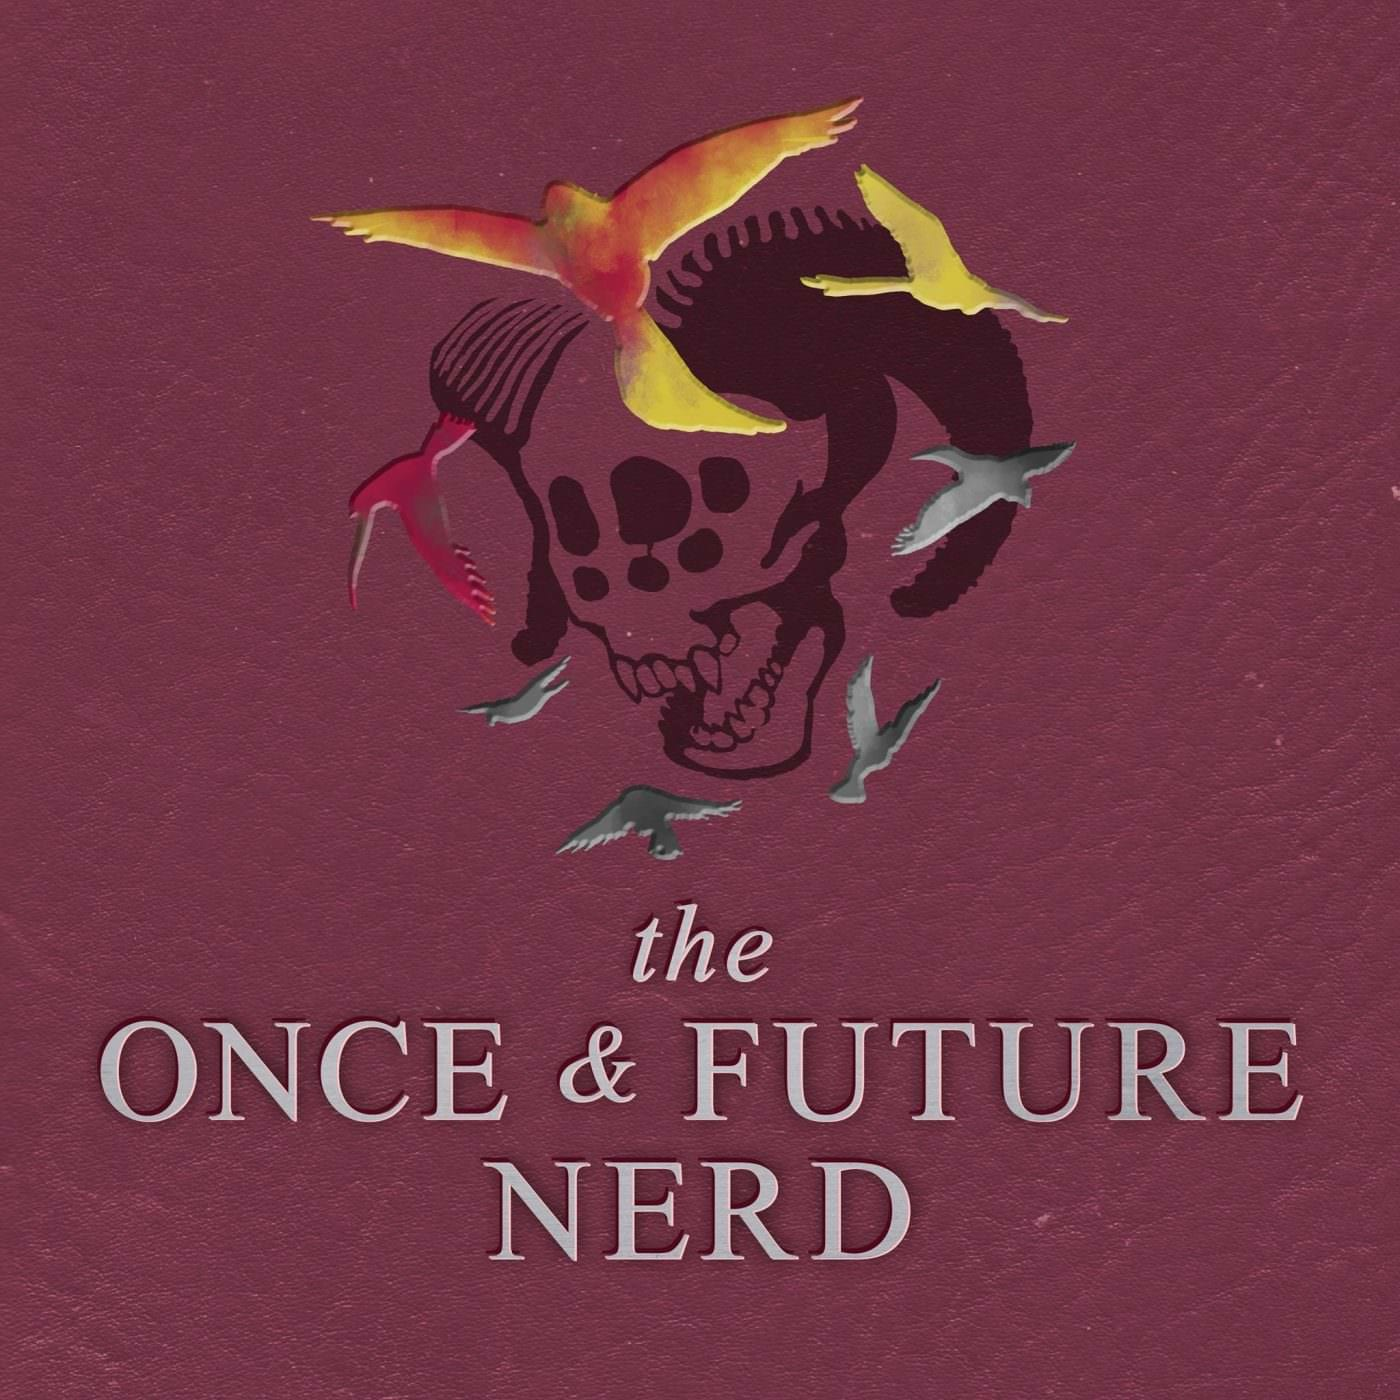 The Once & Future Nerd